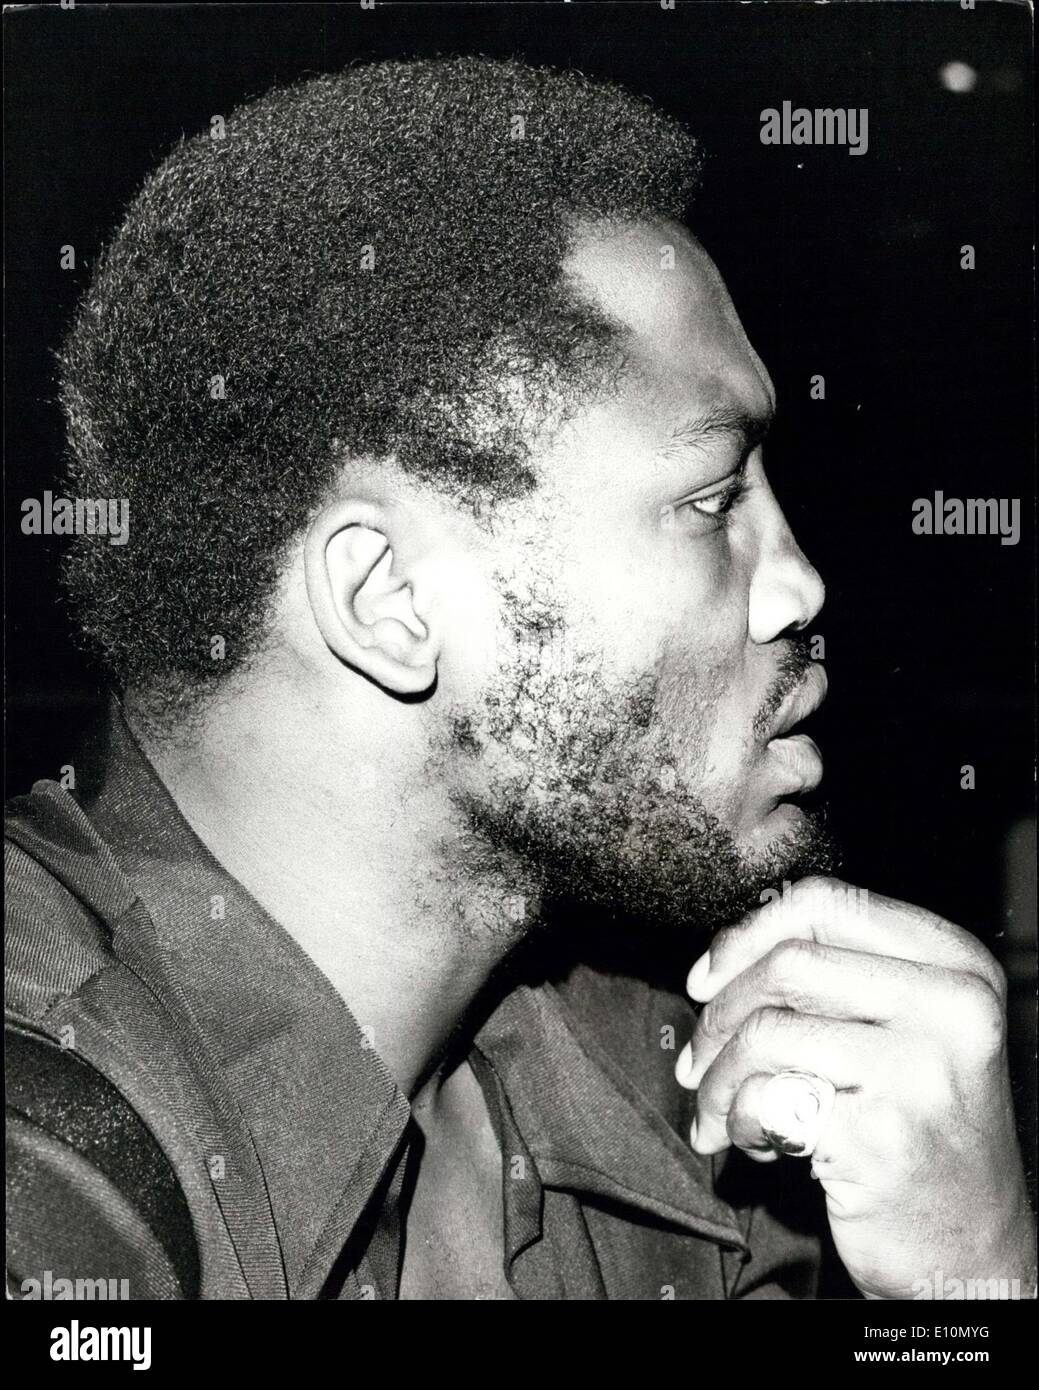 Jun. 26, 1973 - Will Frazier's Beard have to go: The former world heavyweight champion, Joe Frazier, together with Britain's Joe Bugner who meet at Earls Court, London, next Monday, went along to Epire Ballroom, Leicester Square, to go over the rules of the fight, during which Frazier was in dispute with Bugner's manager, Andy Smith as to whether he will be allowed to retain his beard. The B.B.B. of C are considering the issue. Photo shows Joe Frazier thoughtfully fingers his beard, today. - Stock Image